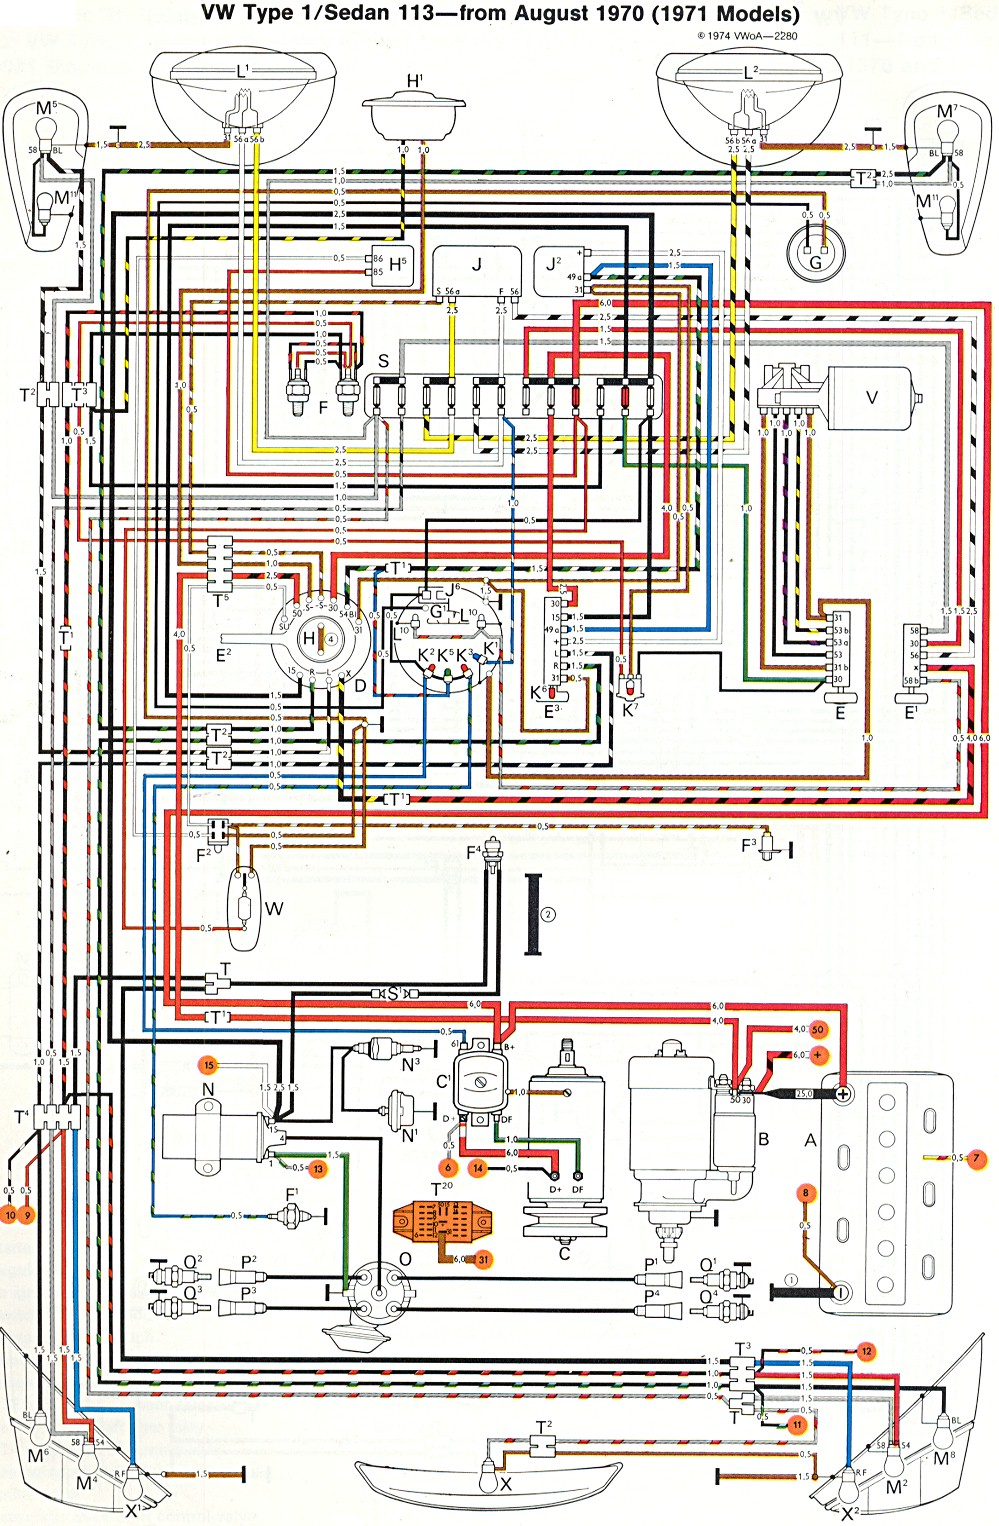 bug_super_71 1971 super beetle wiring diagram thegoldenbug com 1972 beetle wiring diagram at bayanpartner.co